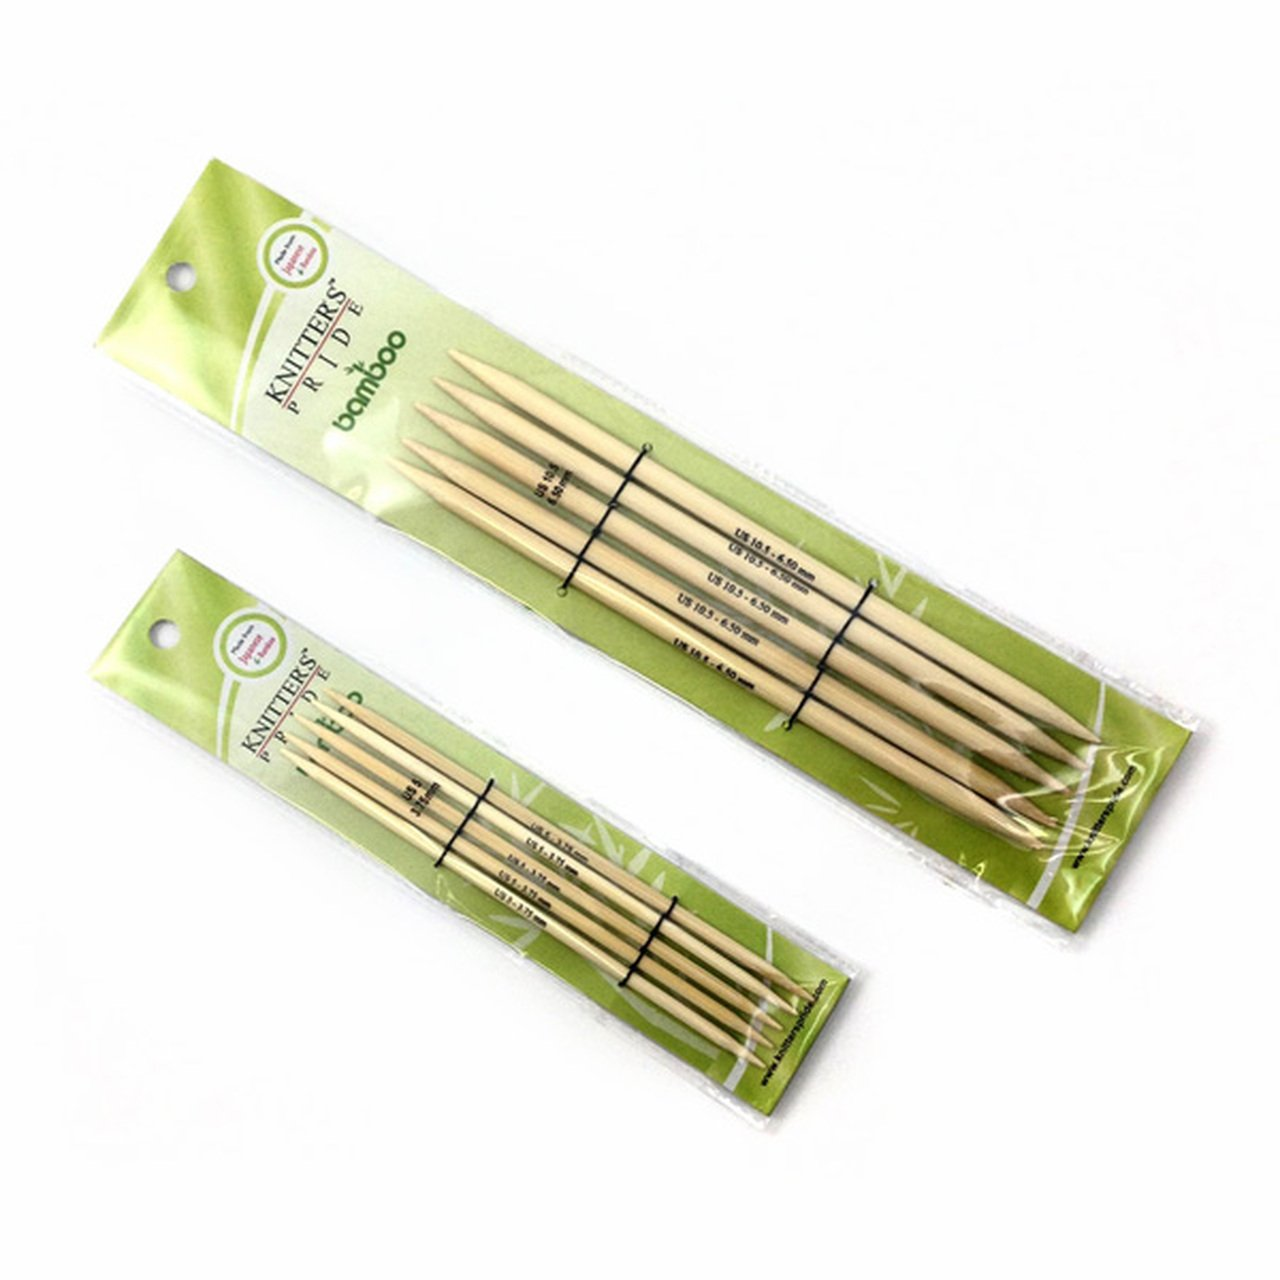 Knitter's Pride - Bamboo - 6 Double Points - Size 2.25mm